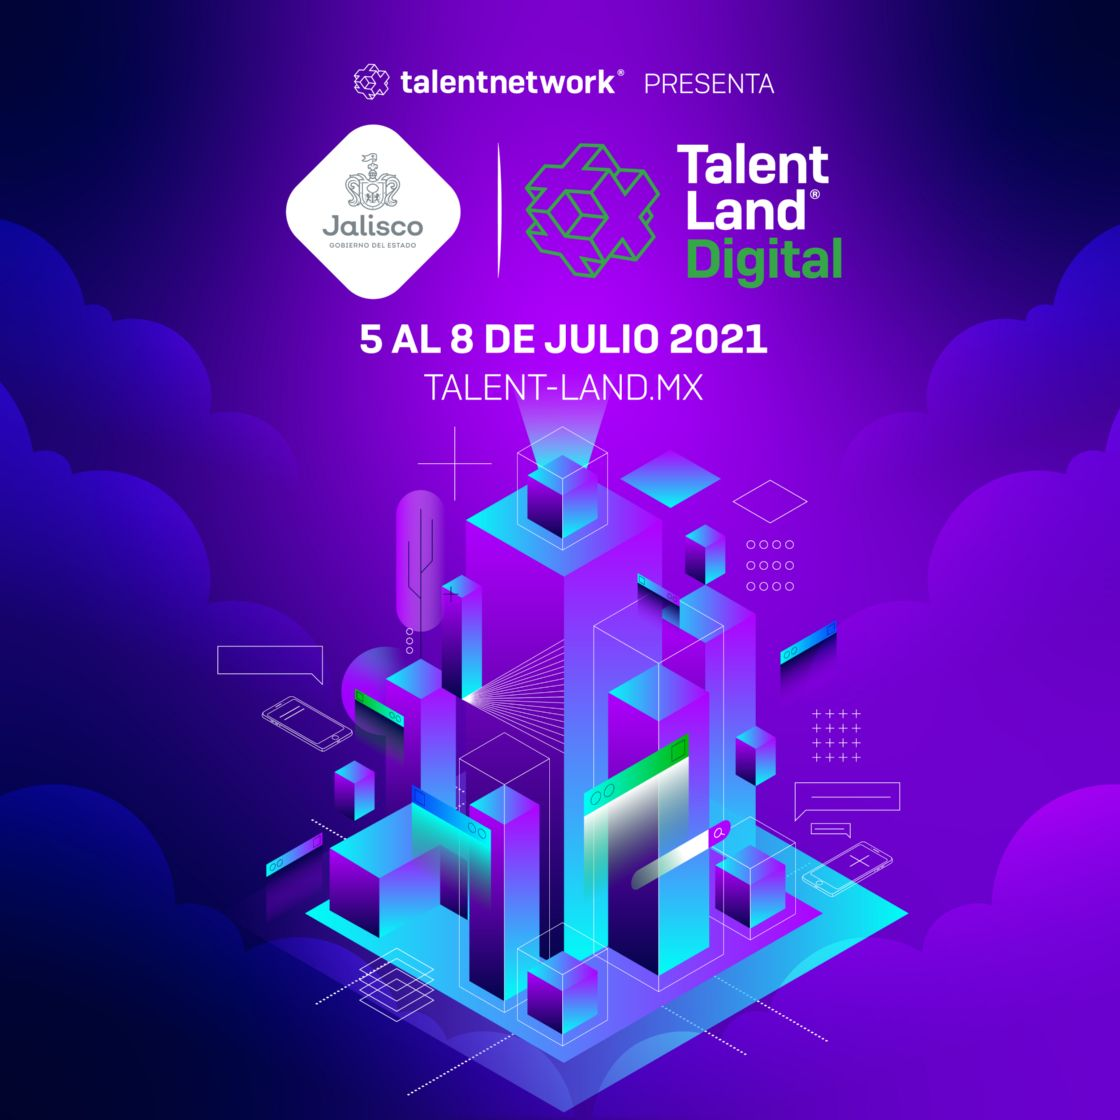 Jalisco invertirá 16 millones de pesos en Talent Land Digital 2021